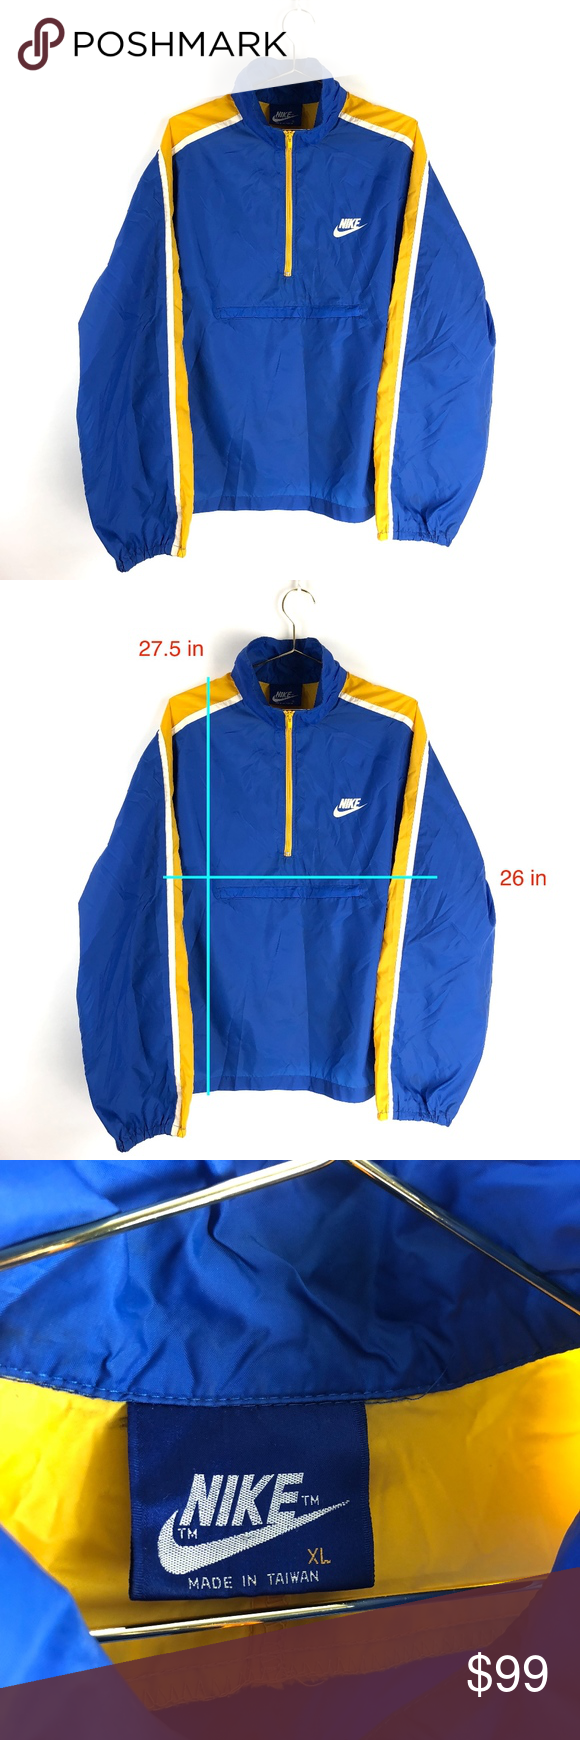 7f03c0e6bf Vintage 80s Nike Windbreaker Blue Tag Jacket XL In beautiful condition for  its age. no stains or holes Blue Tag Nike Features a zip up kangaroo pouch  Nike ...